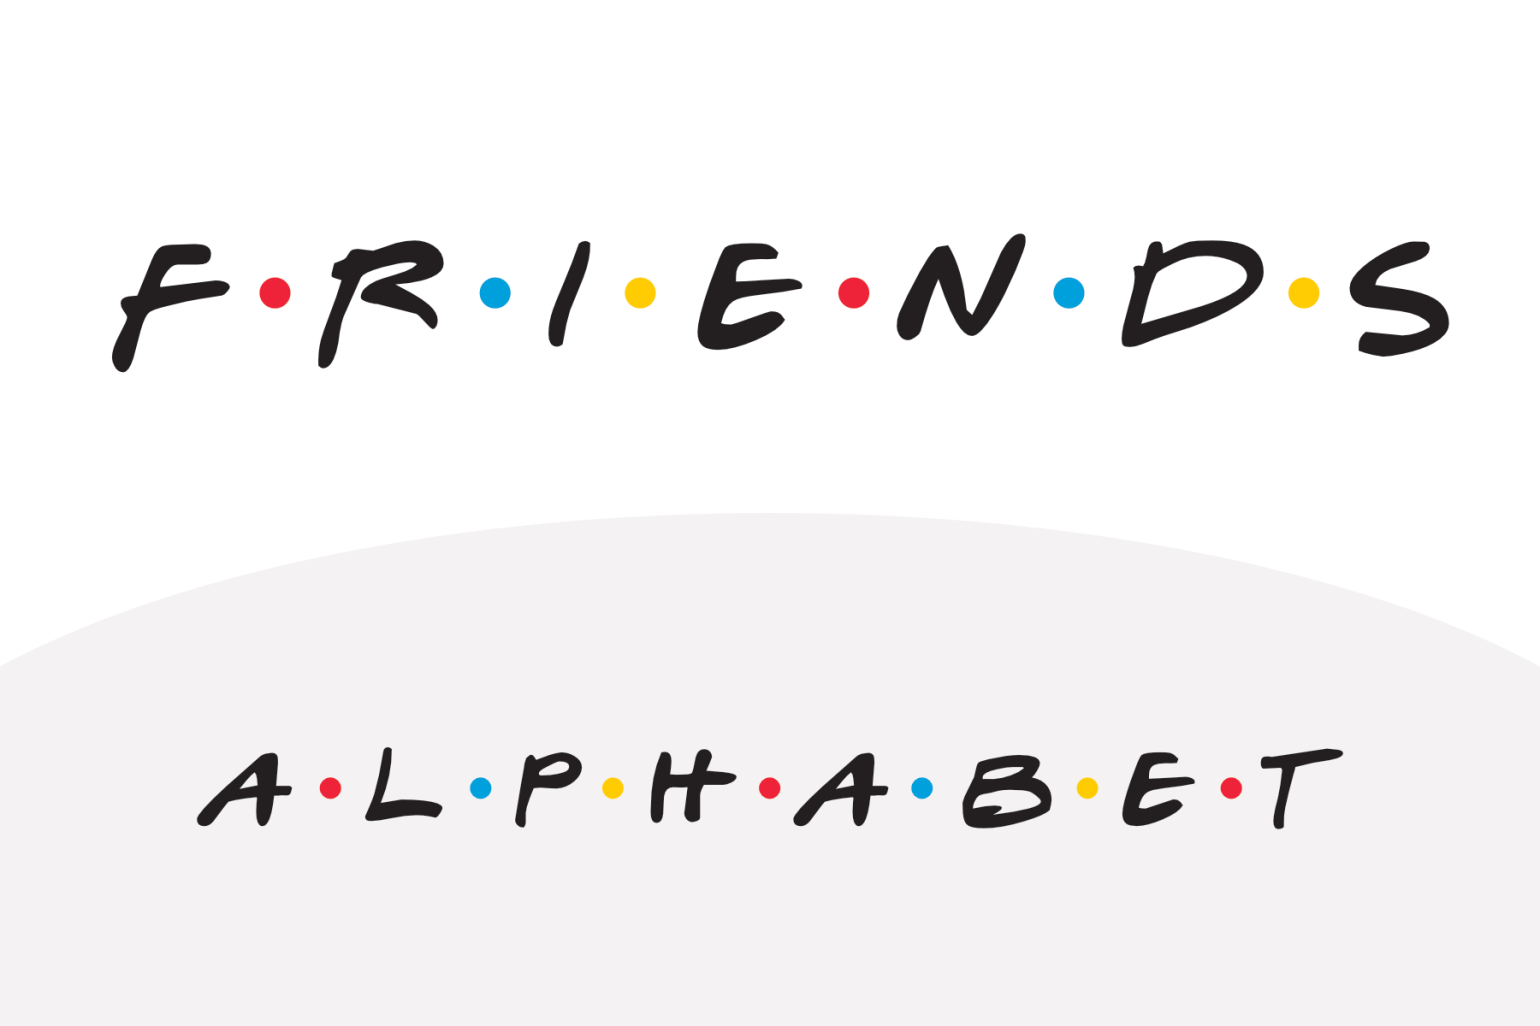 printable alphabet of the friends tv show font.